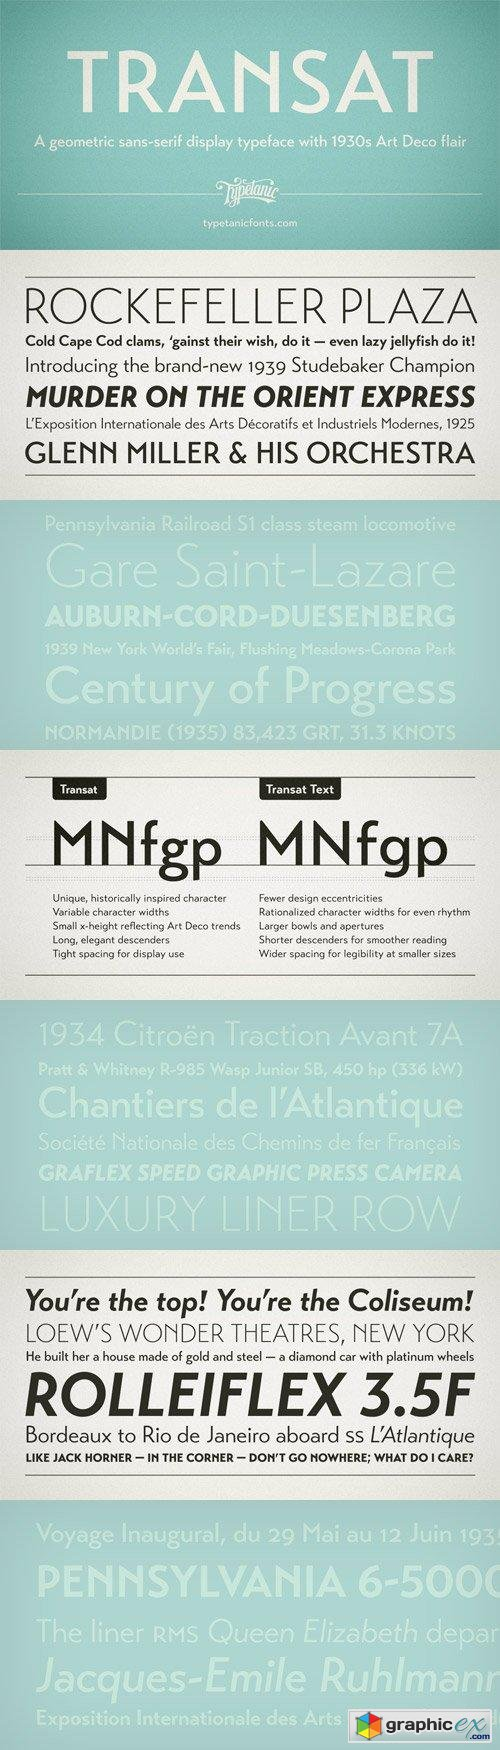 Transat Font Family - 10 Fonts for $72